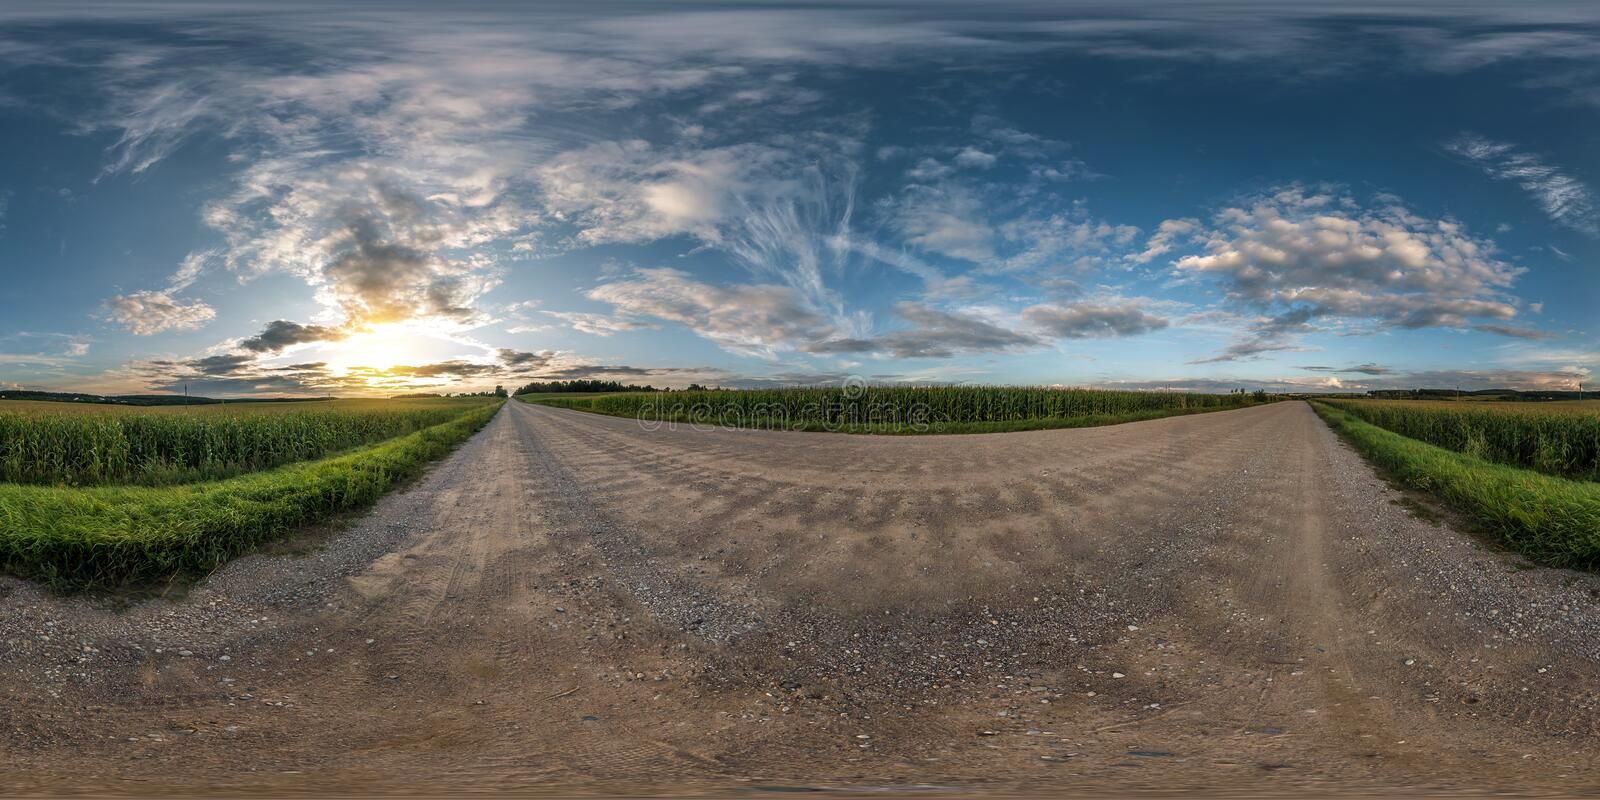 Full seamless spherical panorama 360 degrees angle view on gravel road among fields in summer evening sunset with awesome clouds stock image